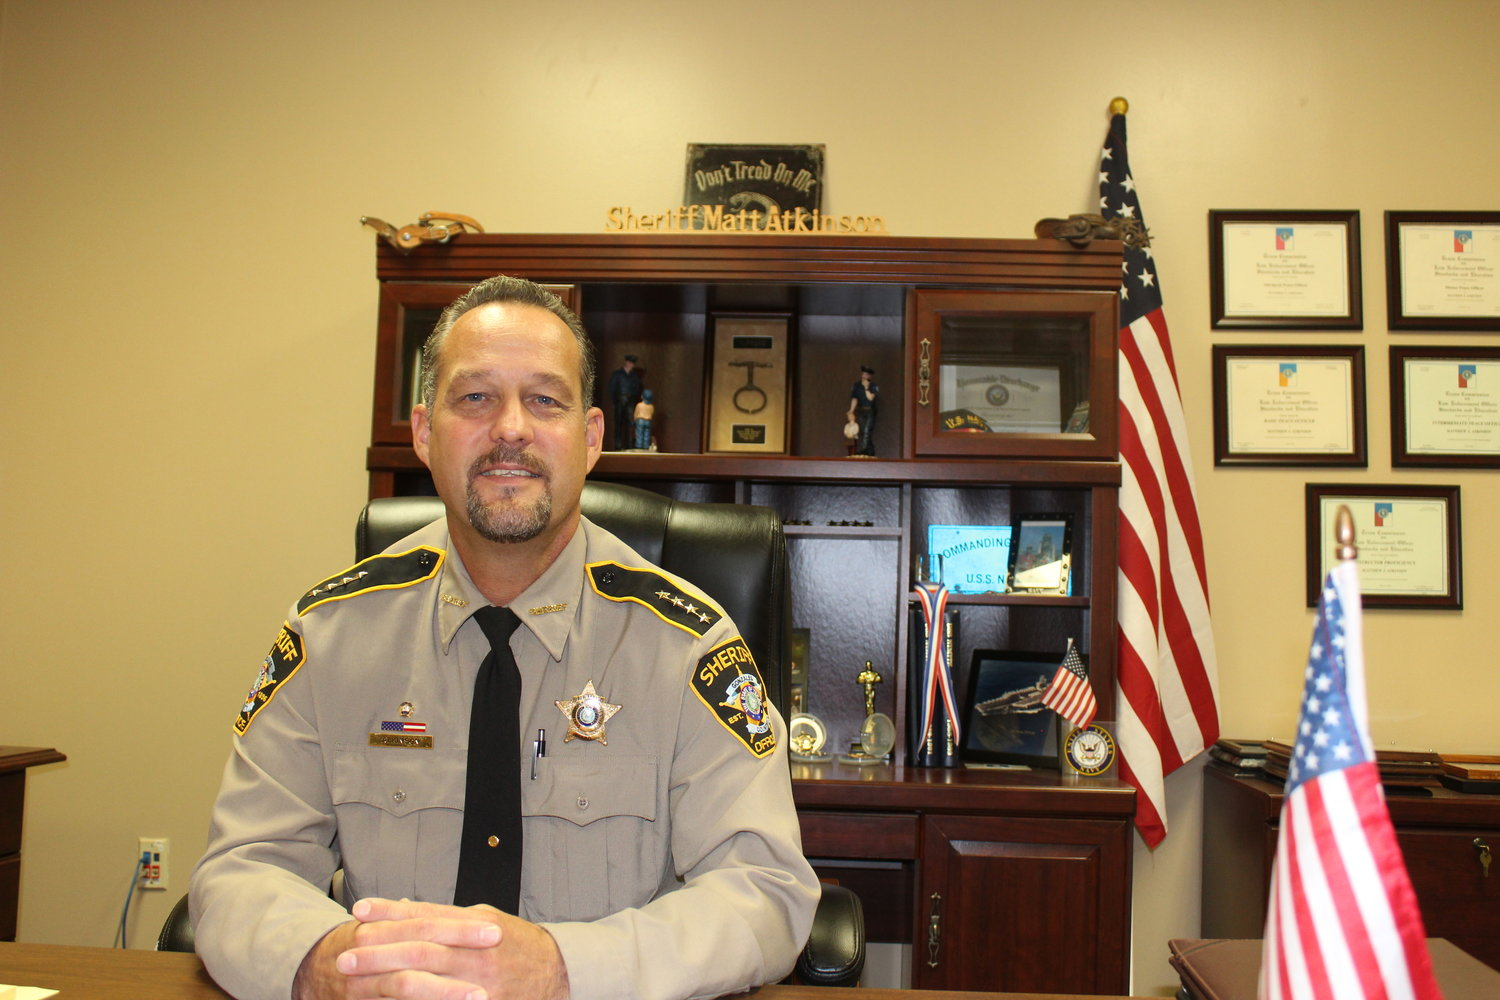 Gonzales County Sheriff Matt Atkinson announced last week that he is going to seek a second term as sheriff in the 2020 election.